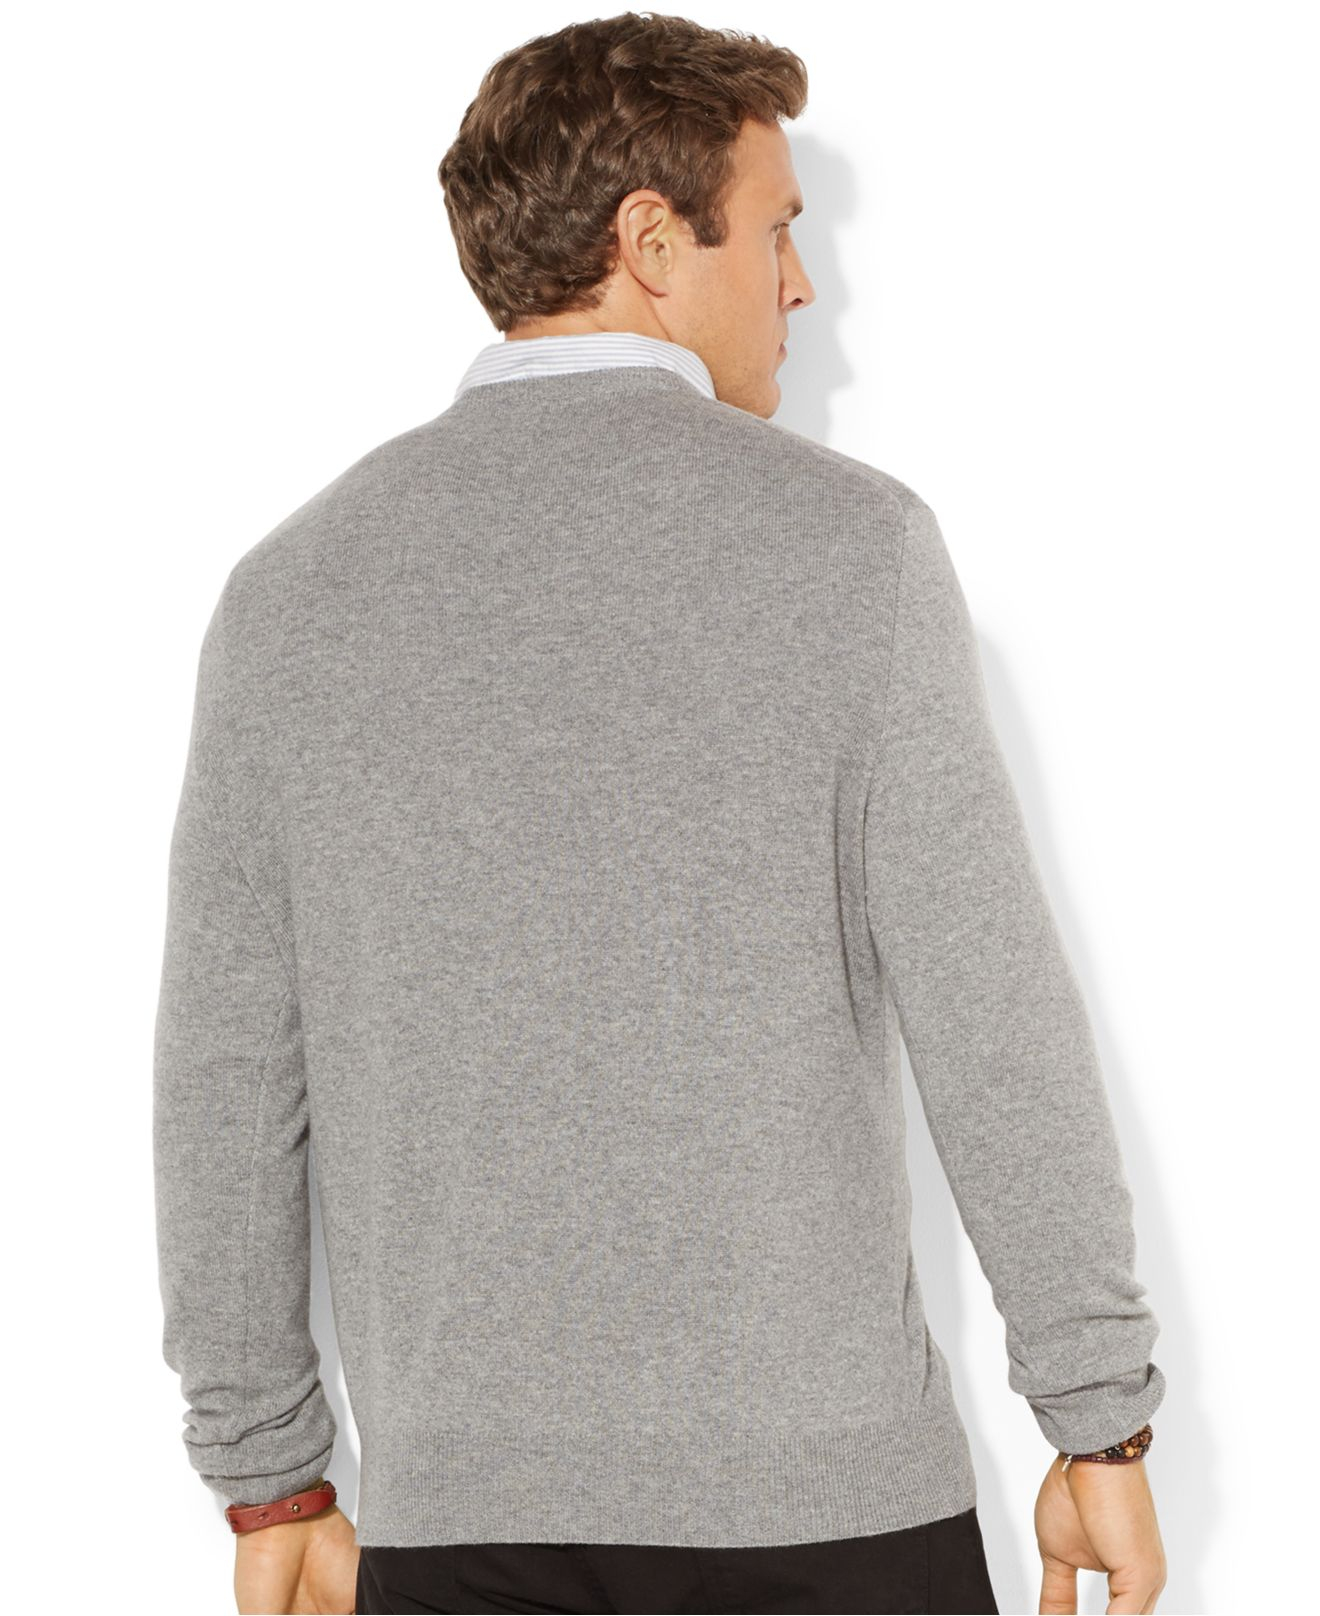 Shop for Men's Big and Tall Sweaters at newbez.ml Eligible for free shipping and free returns.